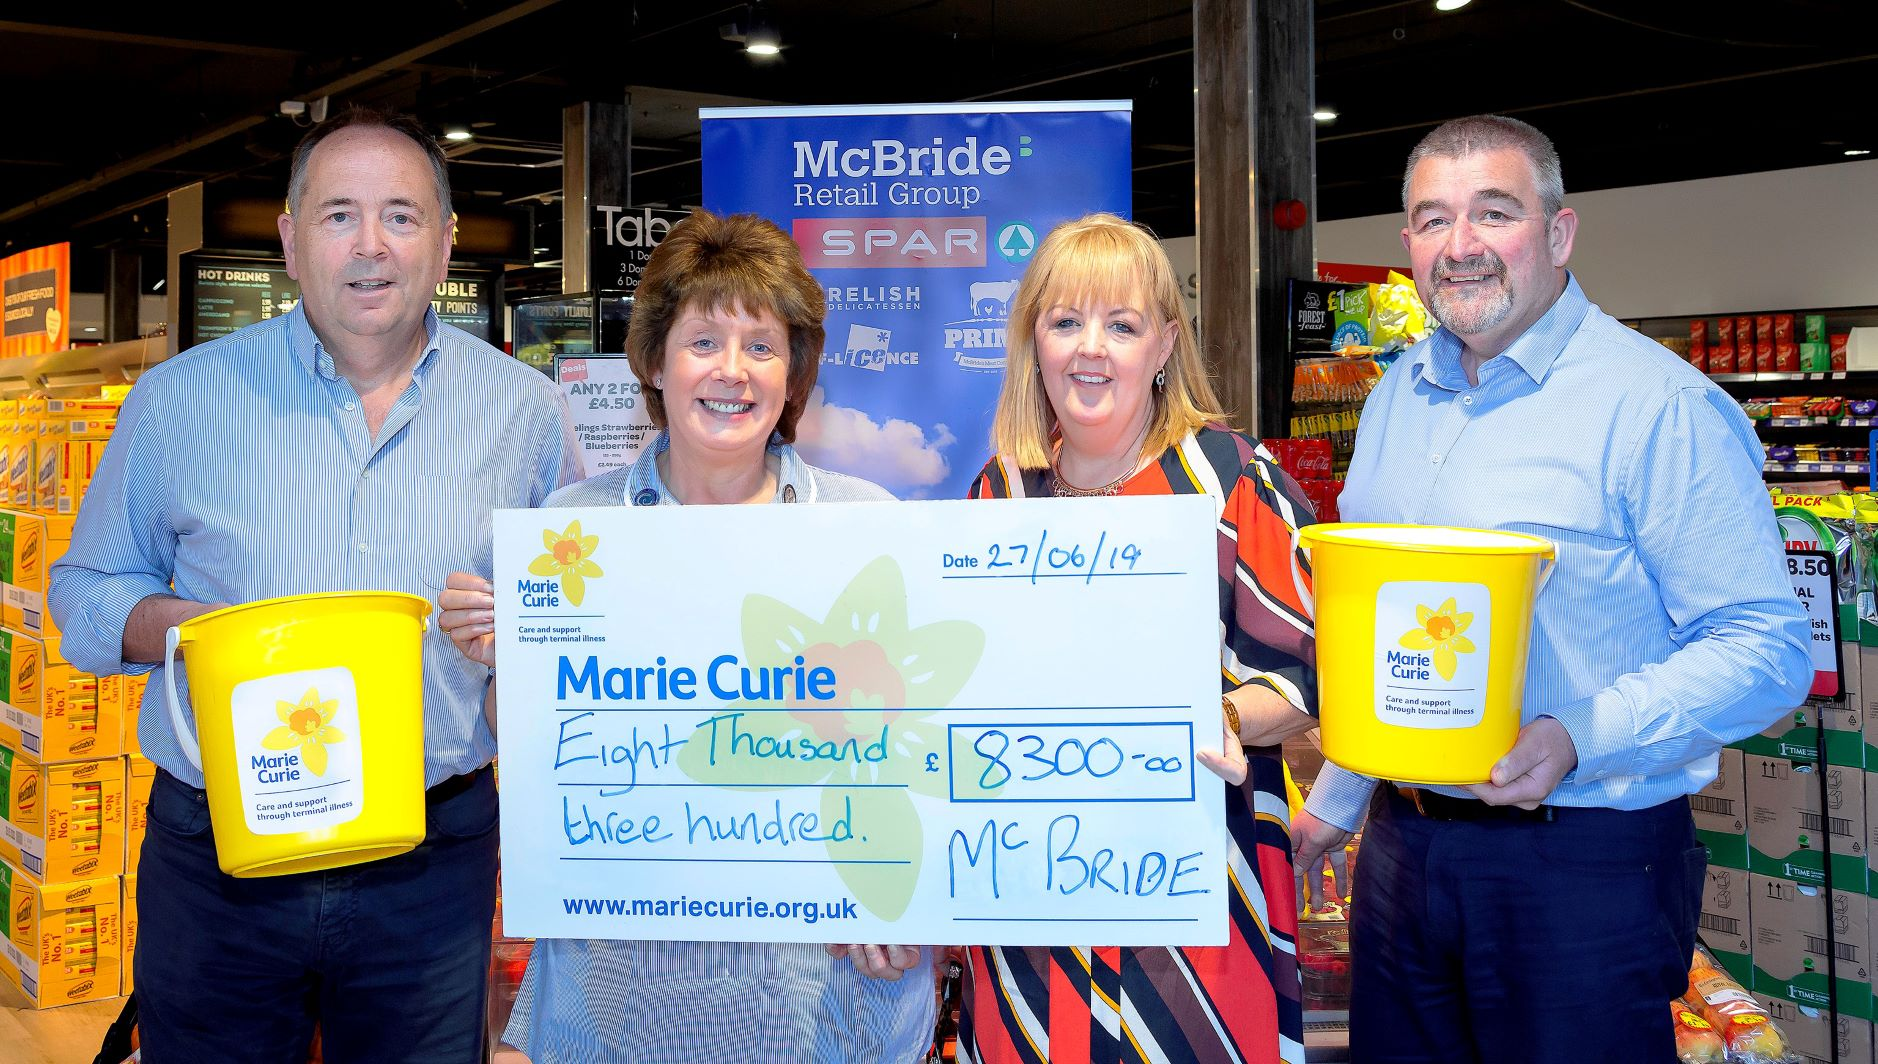 McBride's stores raise £8,300 for Marie Curie